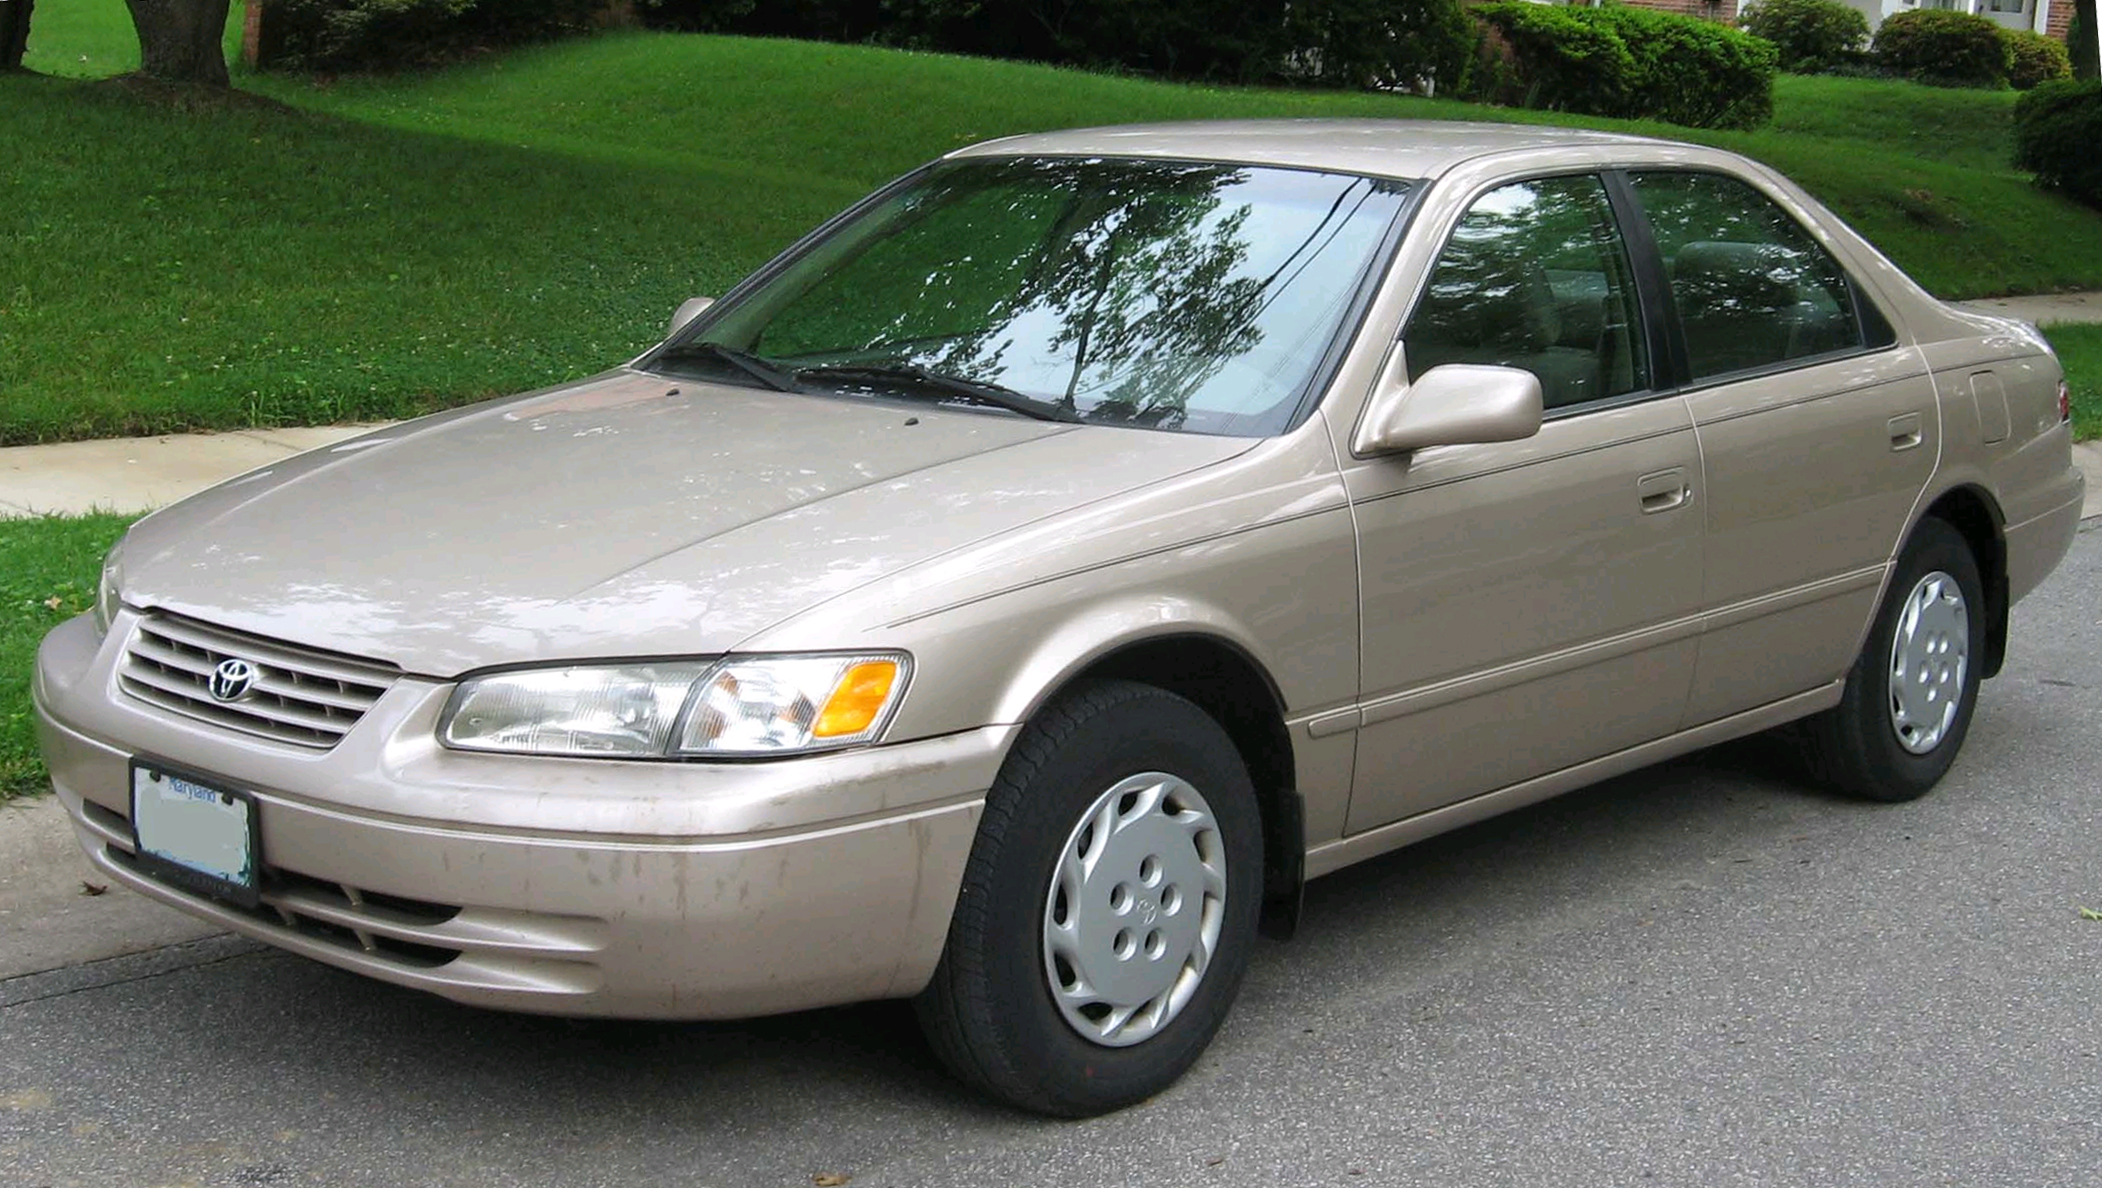 1998 Toyota Camry Information And Photos Momentcar